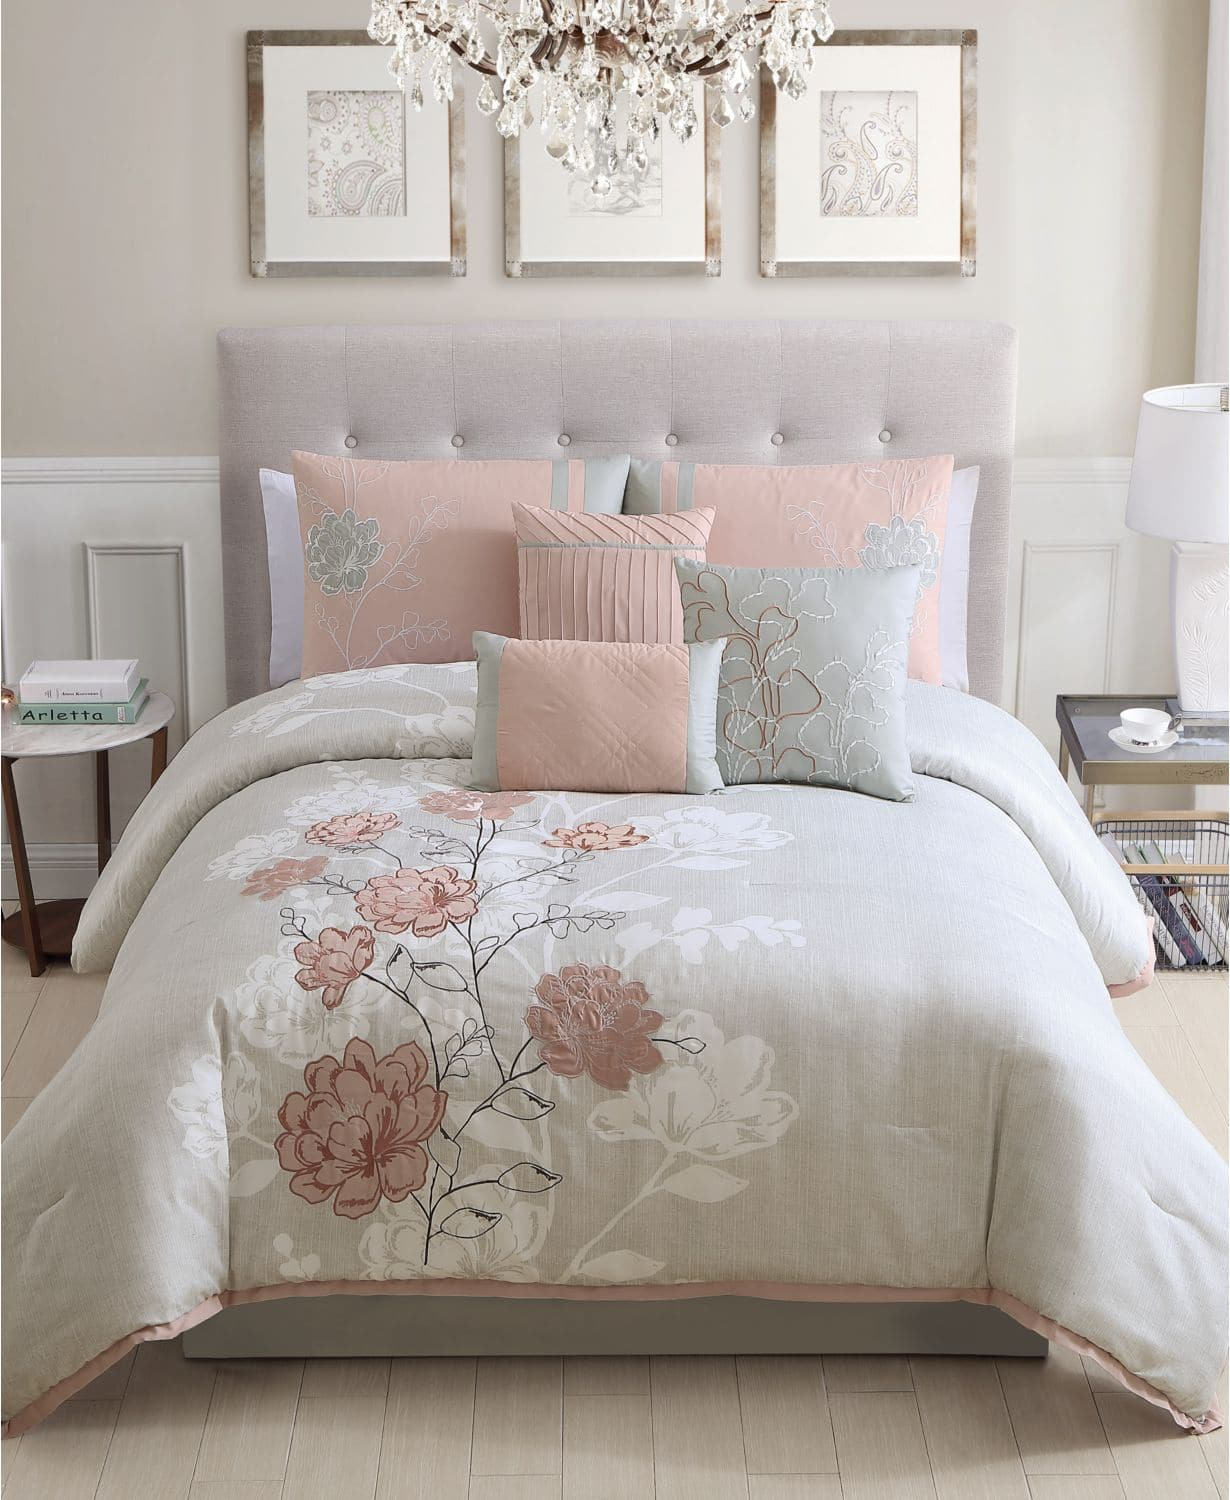 Brissa 7-Pc Comforter Sets in King, Queen or Full Sizes $54.99 All Sizes at Macys